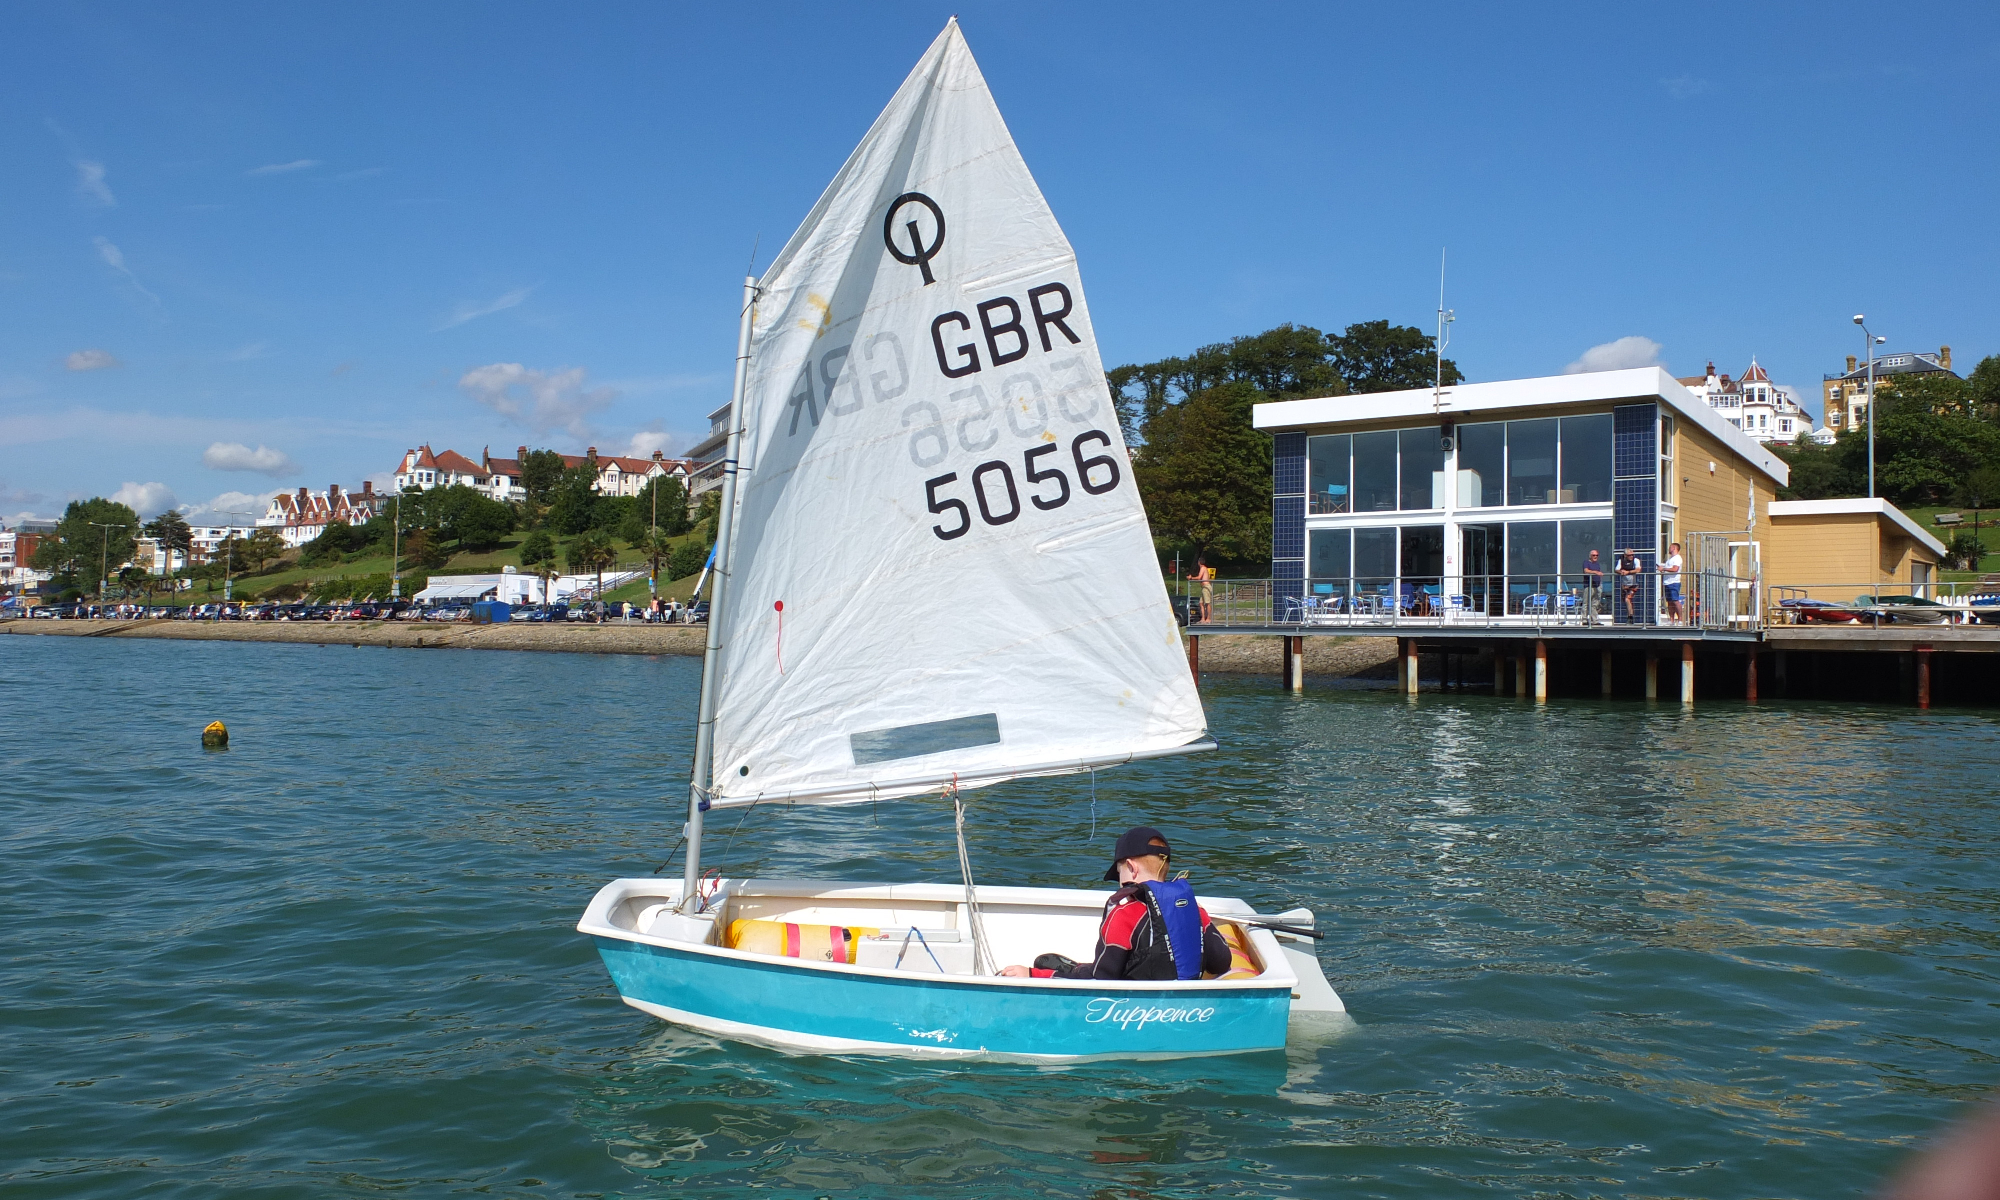 About Sea Cadets, Cadets sailing